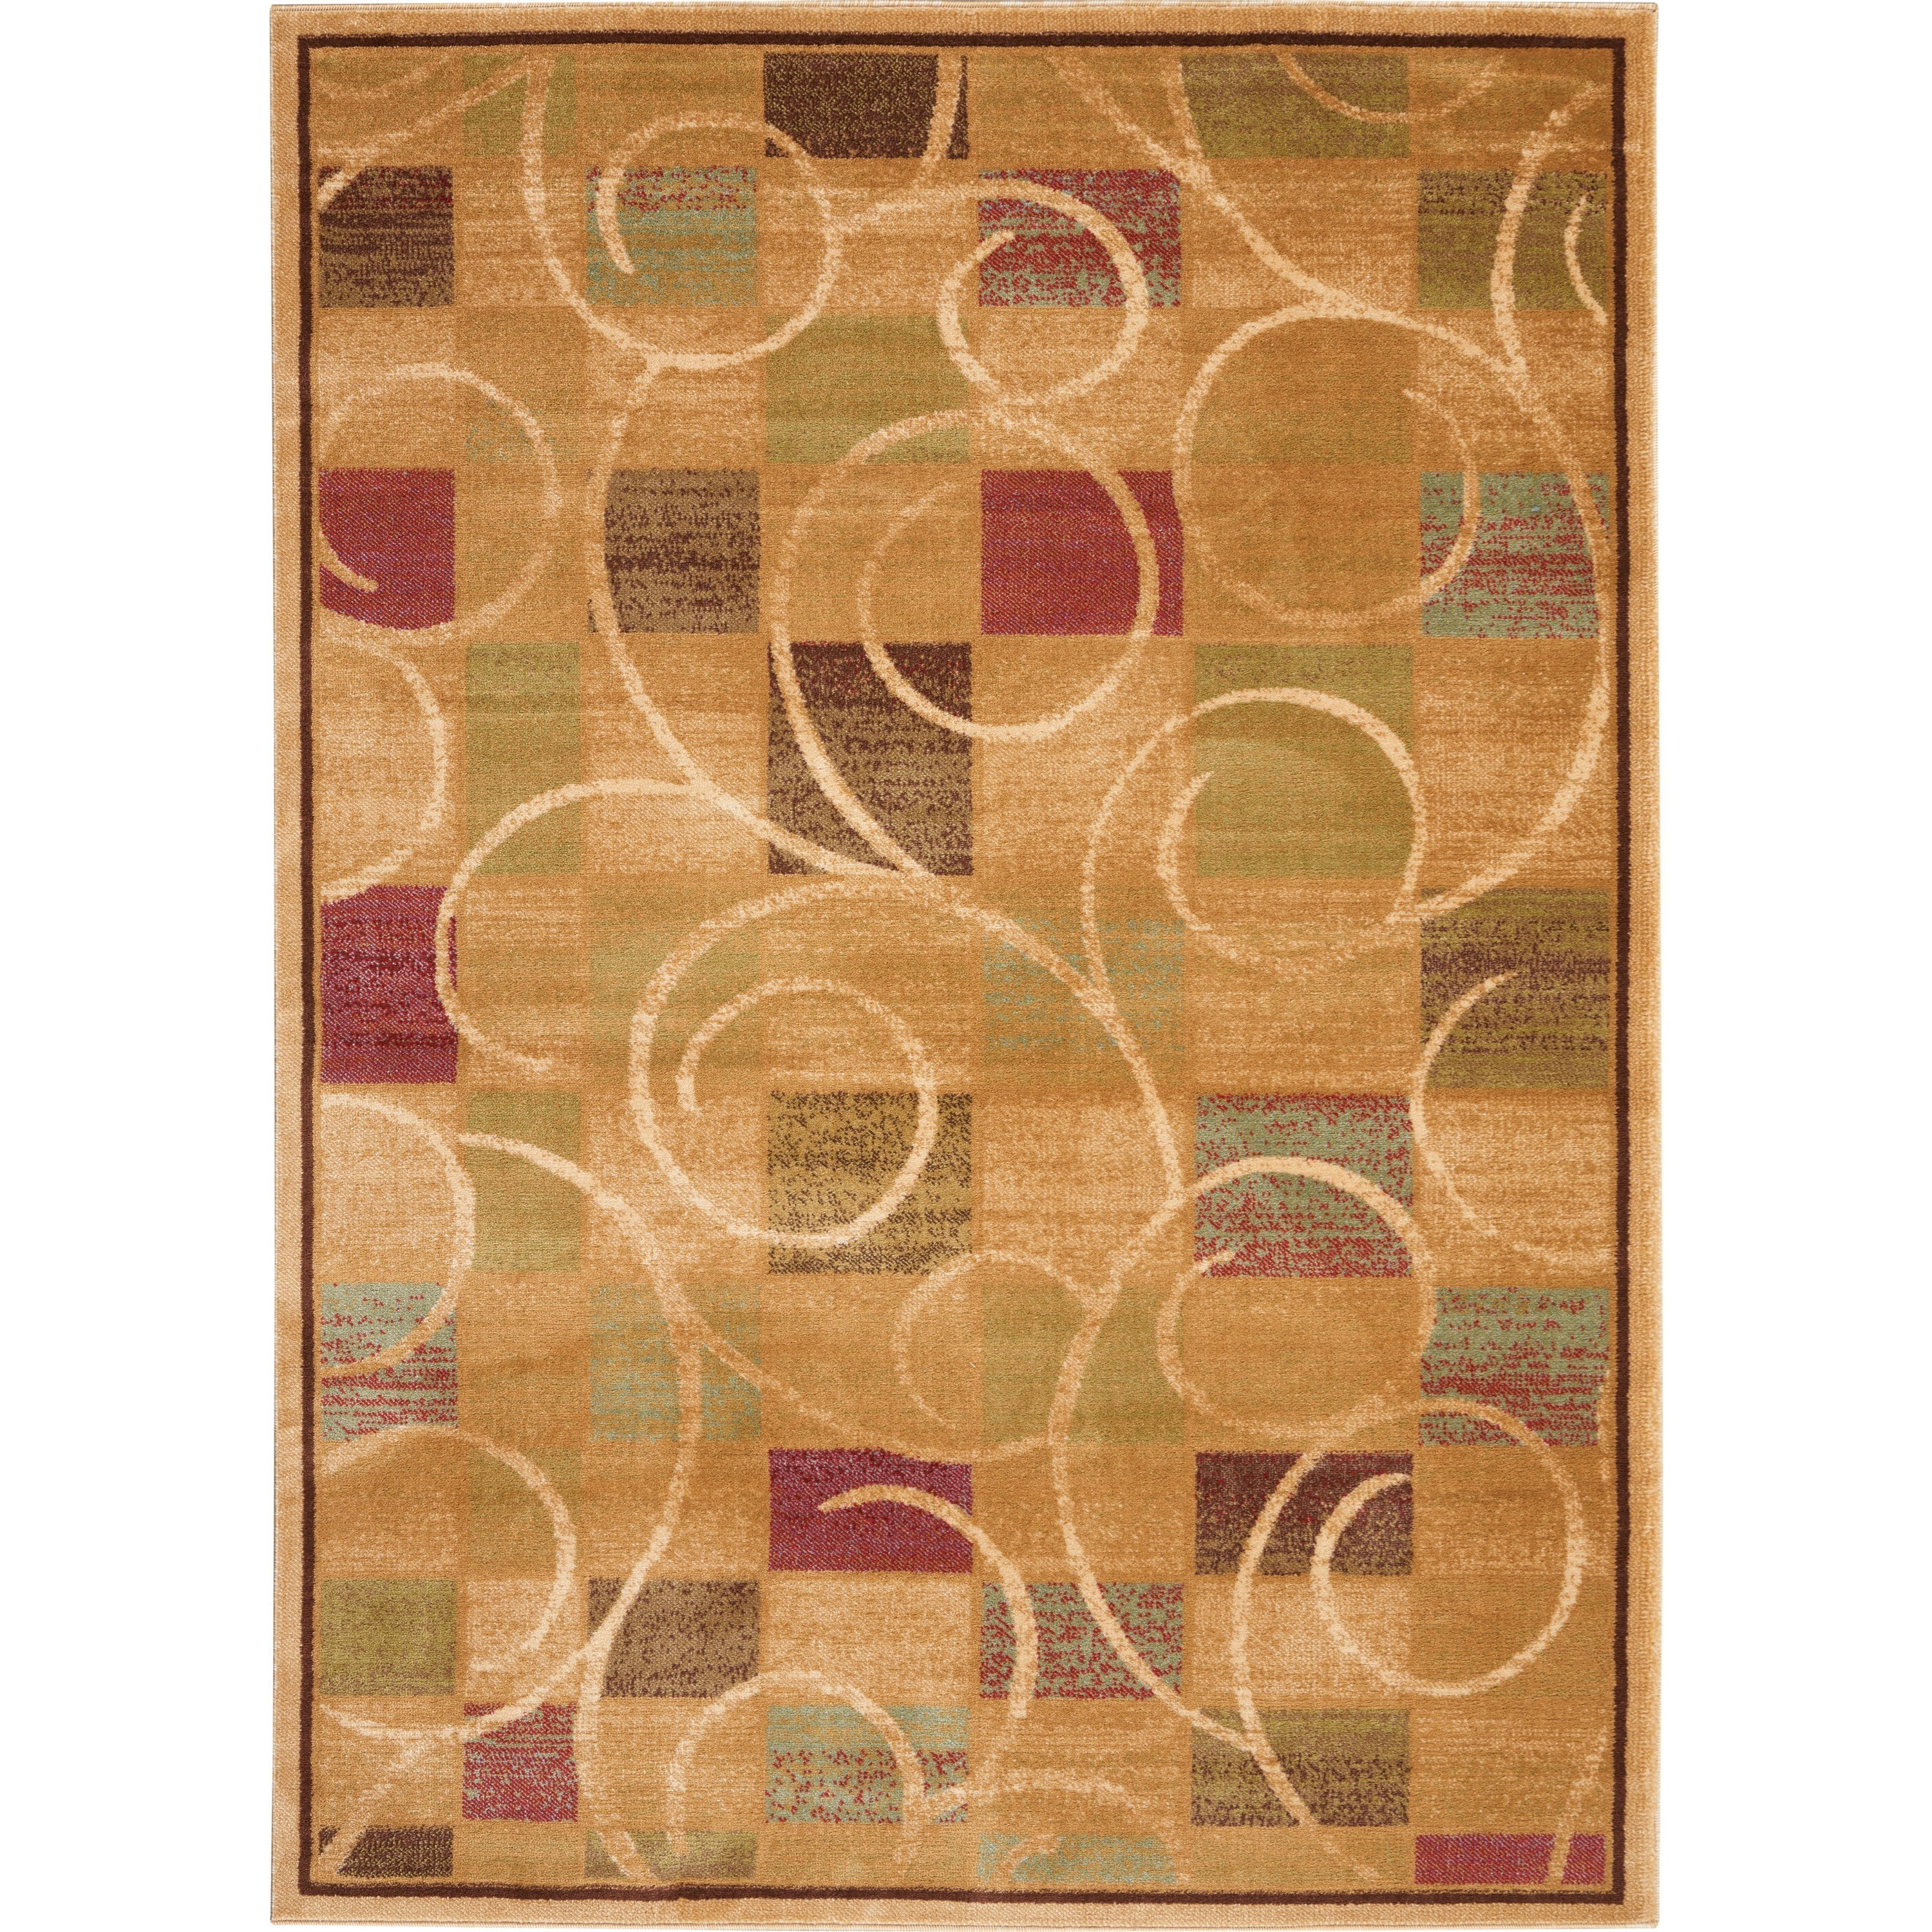 Expressions 2020 4' x 6' Rug by Nourison at Sprintz Furniture